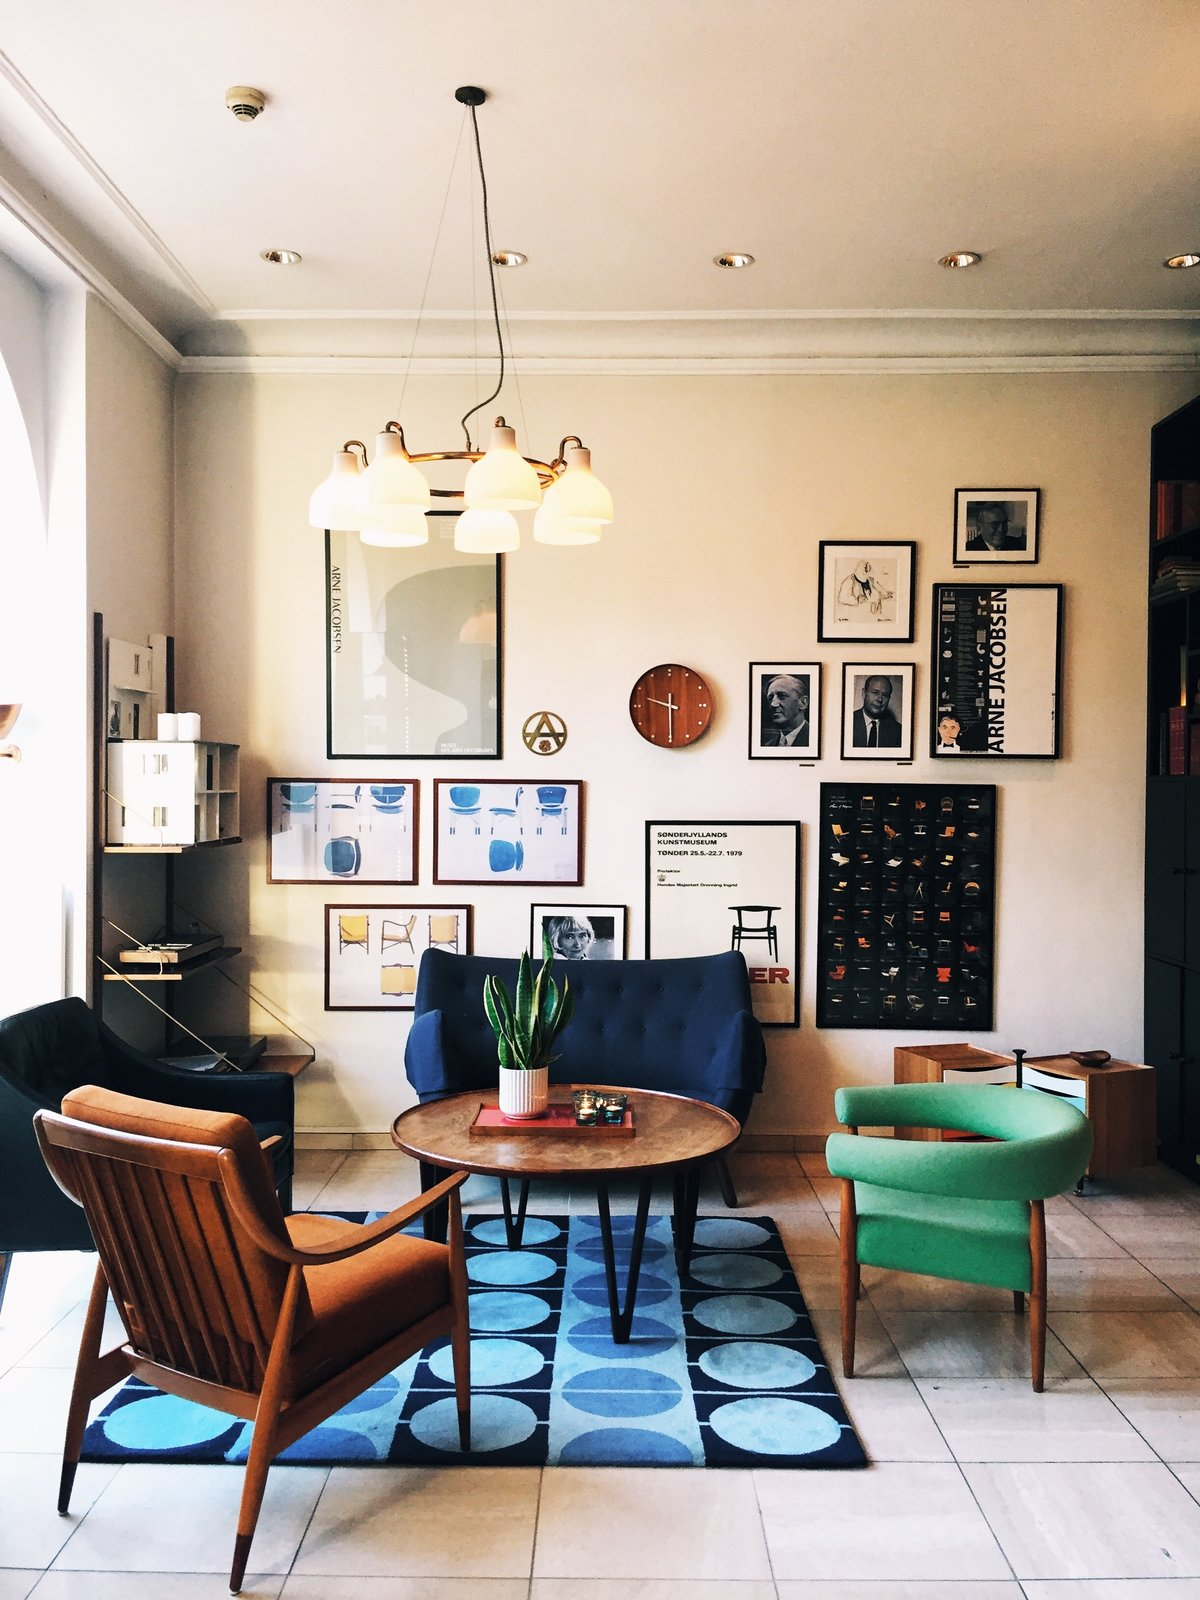 The retro-chic vibe of Copenhagen's Hotel Alexsandra Tagged: Living Room, Chair, Sofa, Coffee Tables, Shelves, Storage, and Pendant Lighting.  Photo 2 of 9 in Get Your Fix of Midcentury Scandinavian Design at This Copenhagen Hotel